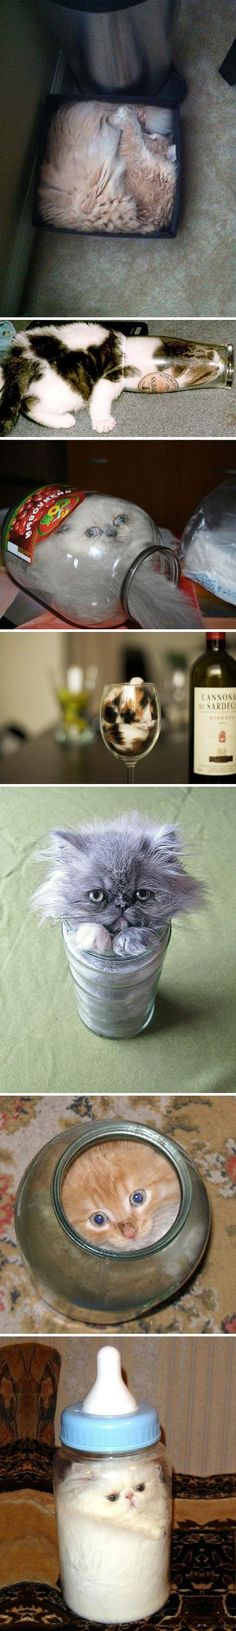 Adorable liquid cats...